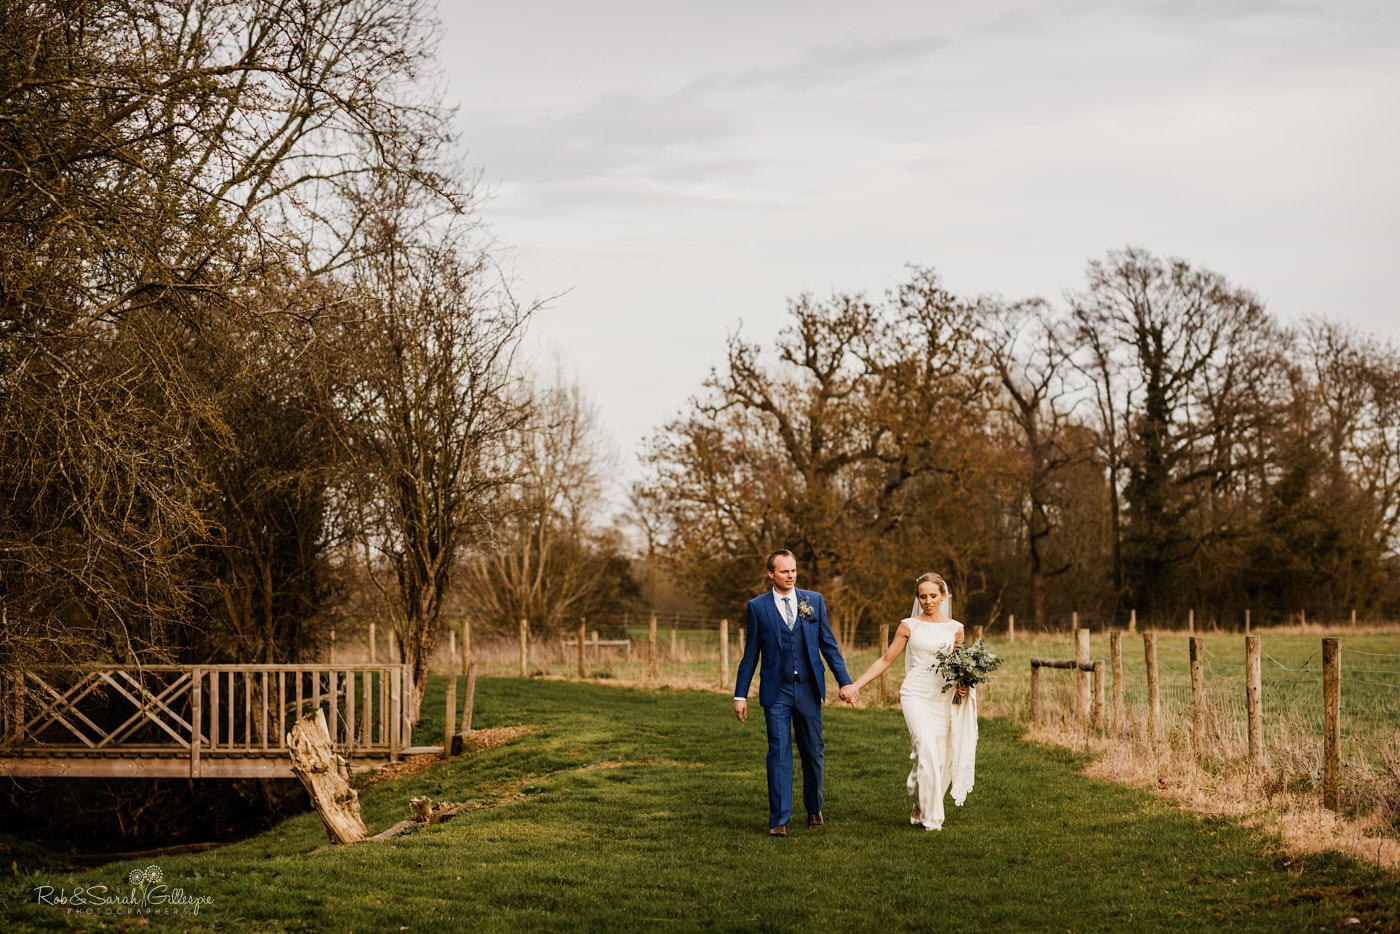 Bride and groom walking together at Swallows Nest Barn